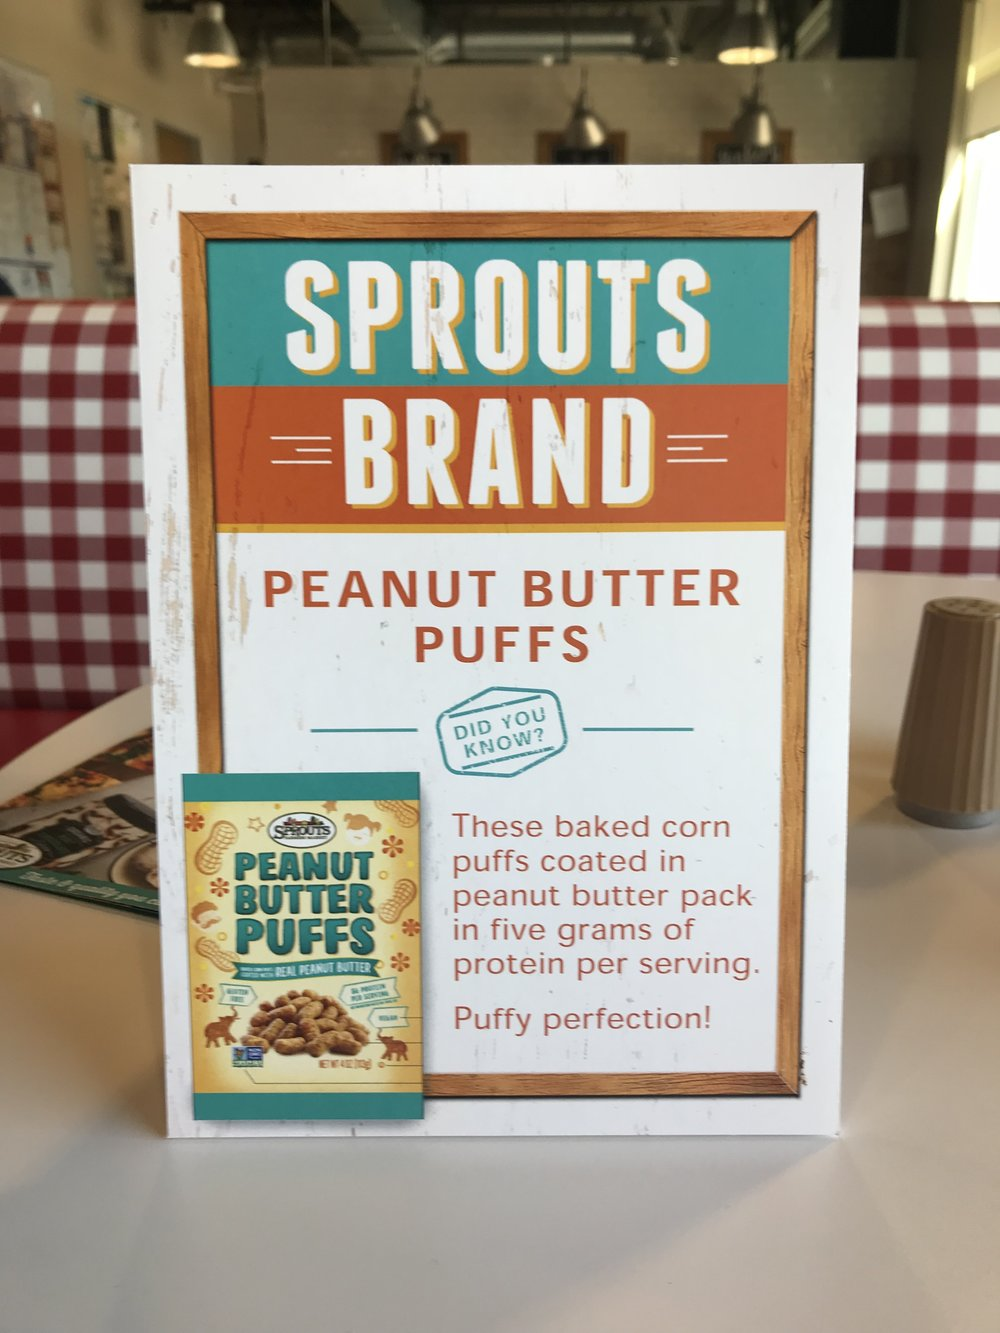 These new Sprouts brand PB puffs were amazing and packed 5g of protein per serving!